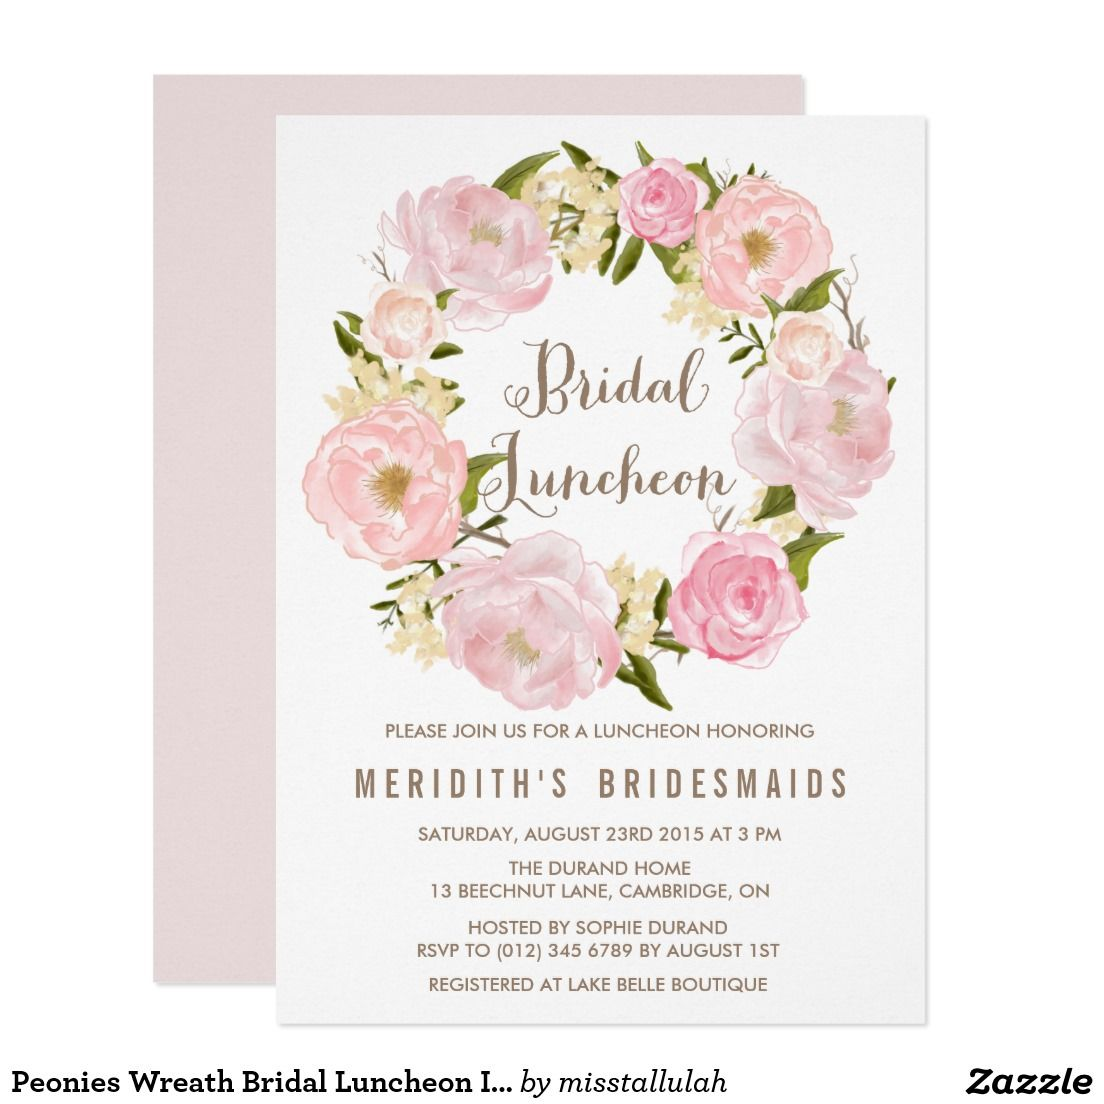 peonies wreath bridal luncheon invitation wedding bridal luncheon